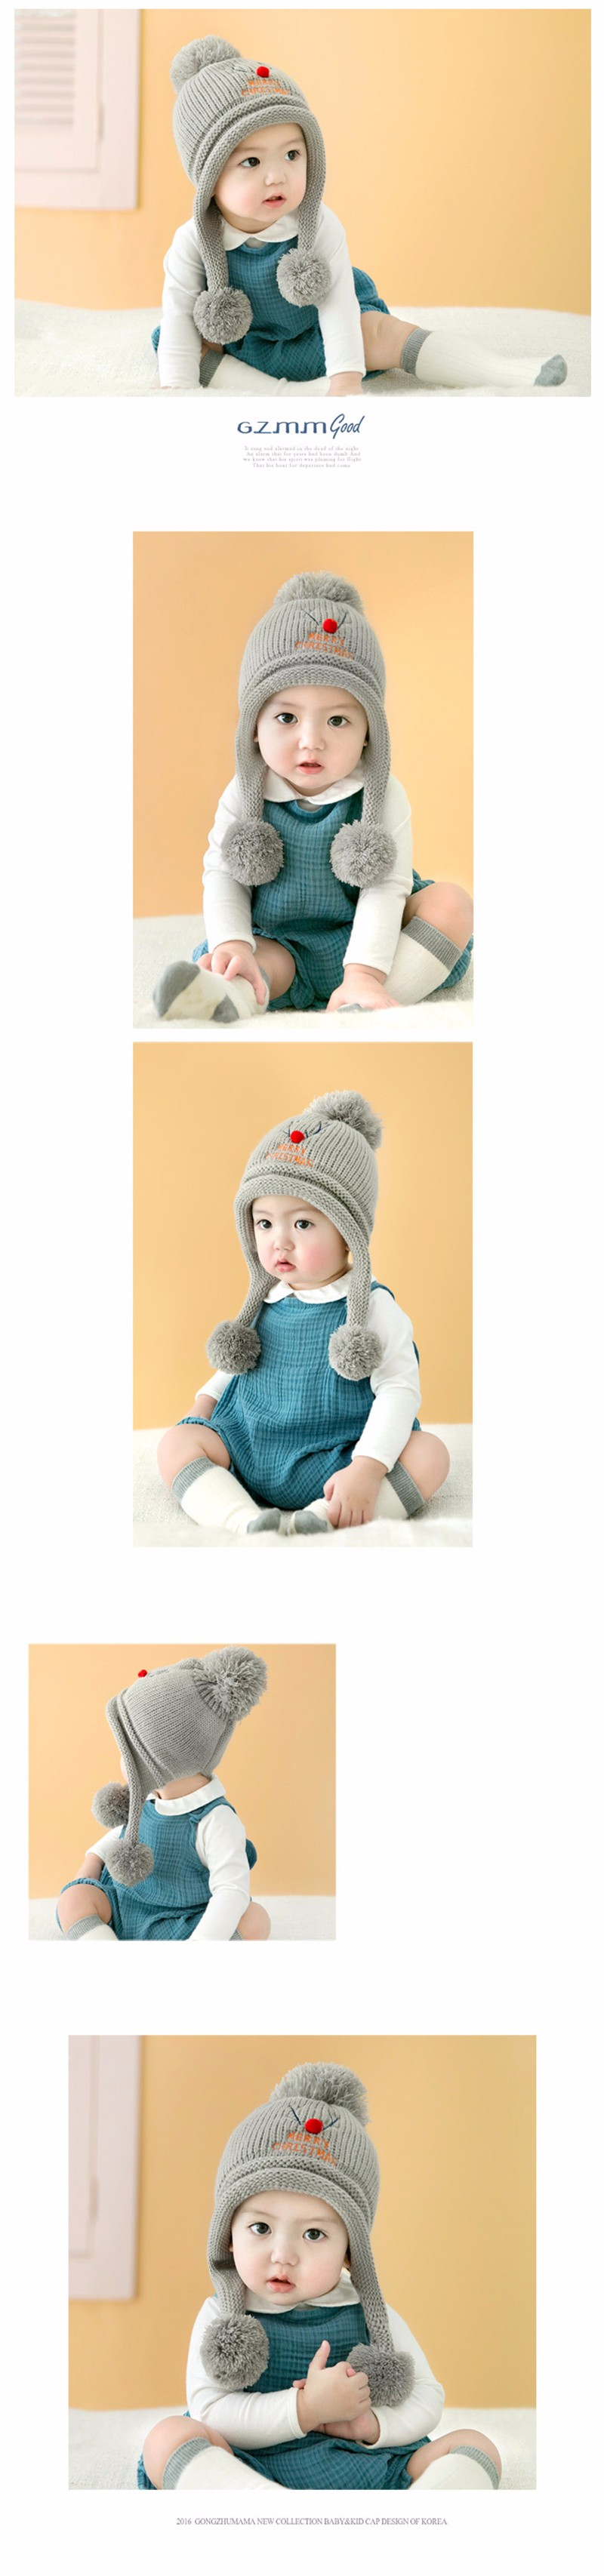 Accessories Fashion Knitted Baby Hat Winter Autumn Lace Up Baby Bonnet For 6-24 Months Girls Boys Warm Cap Street Price Hats & Caps